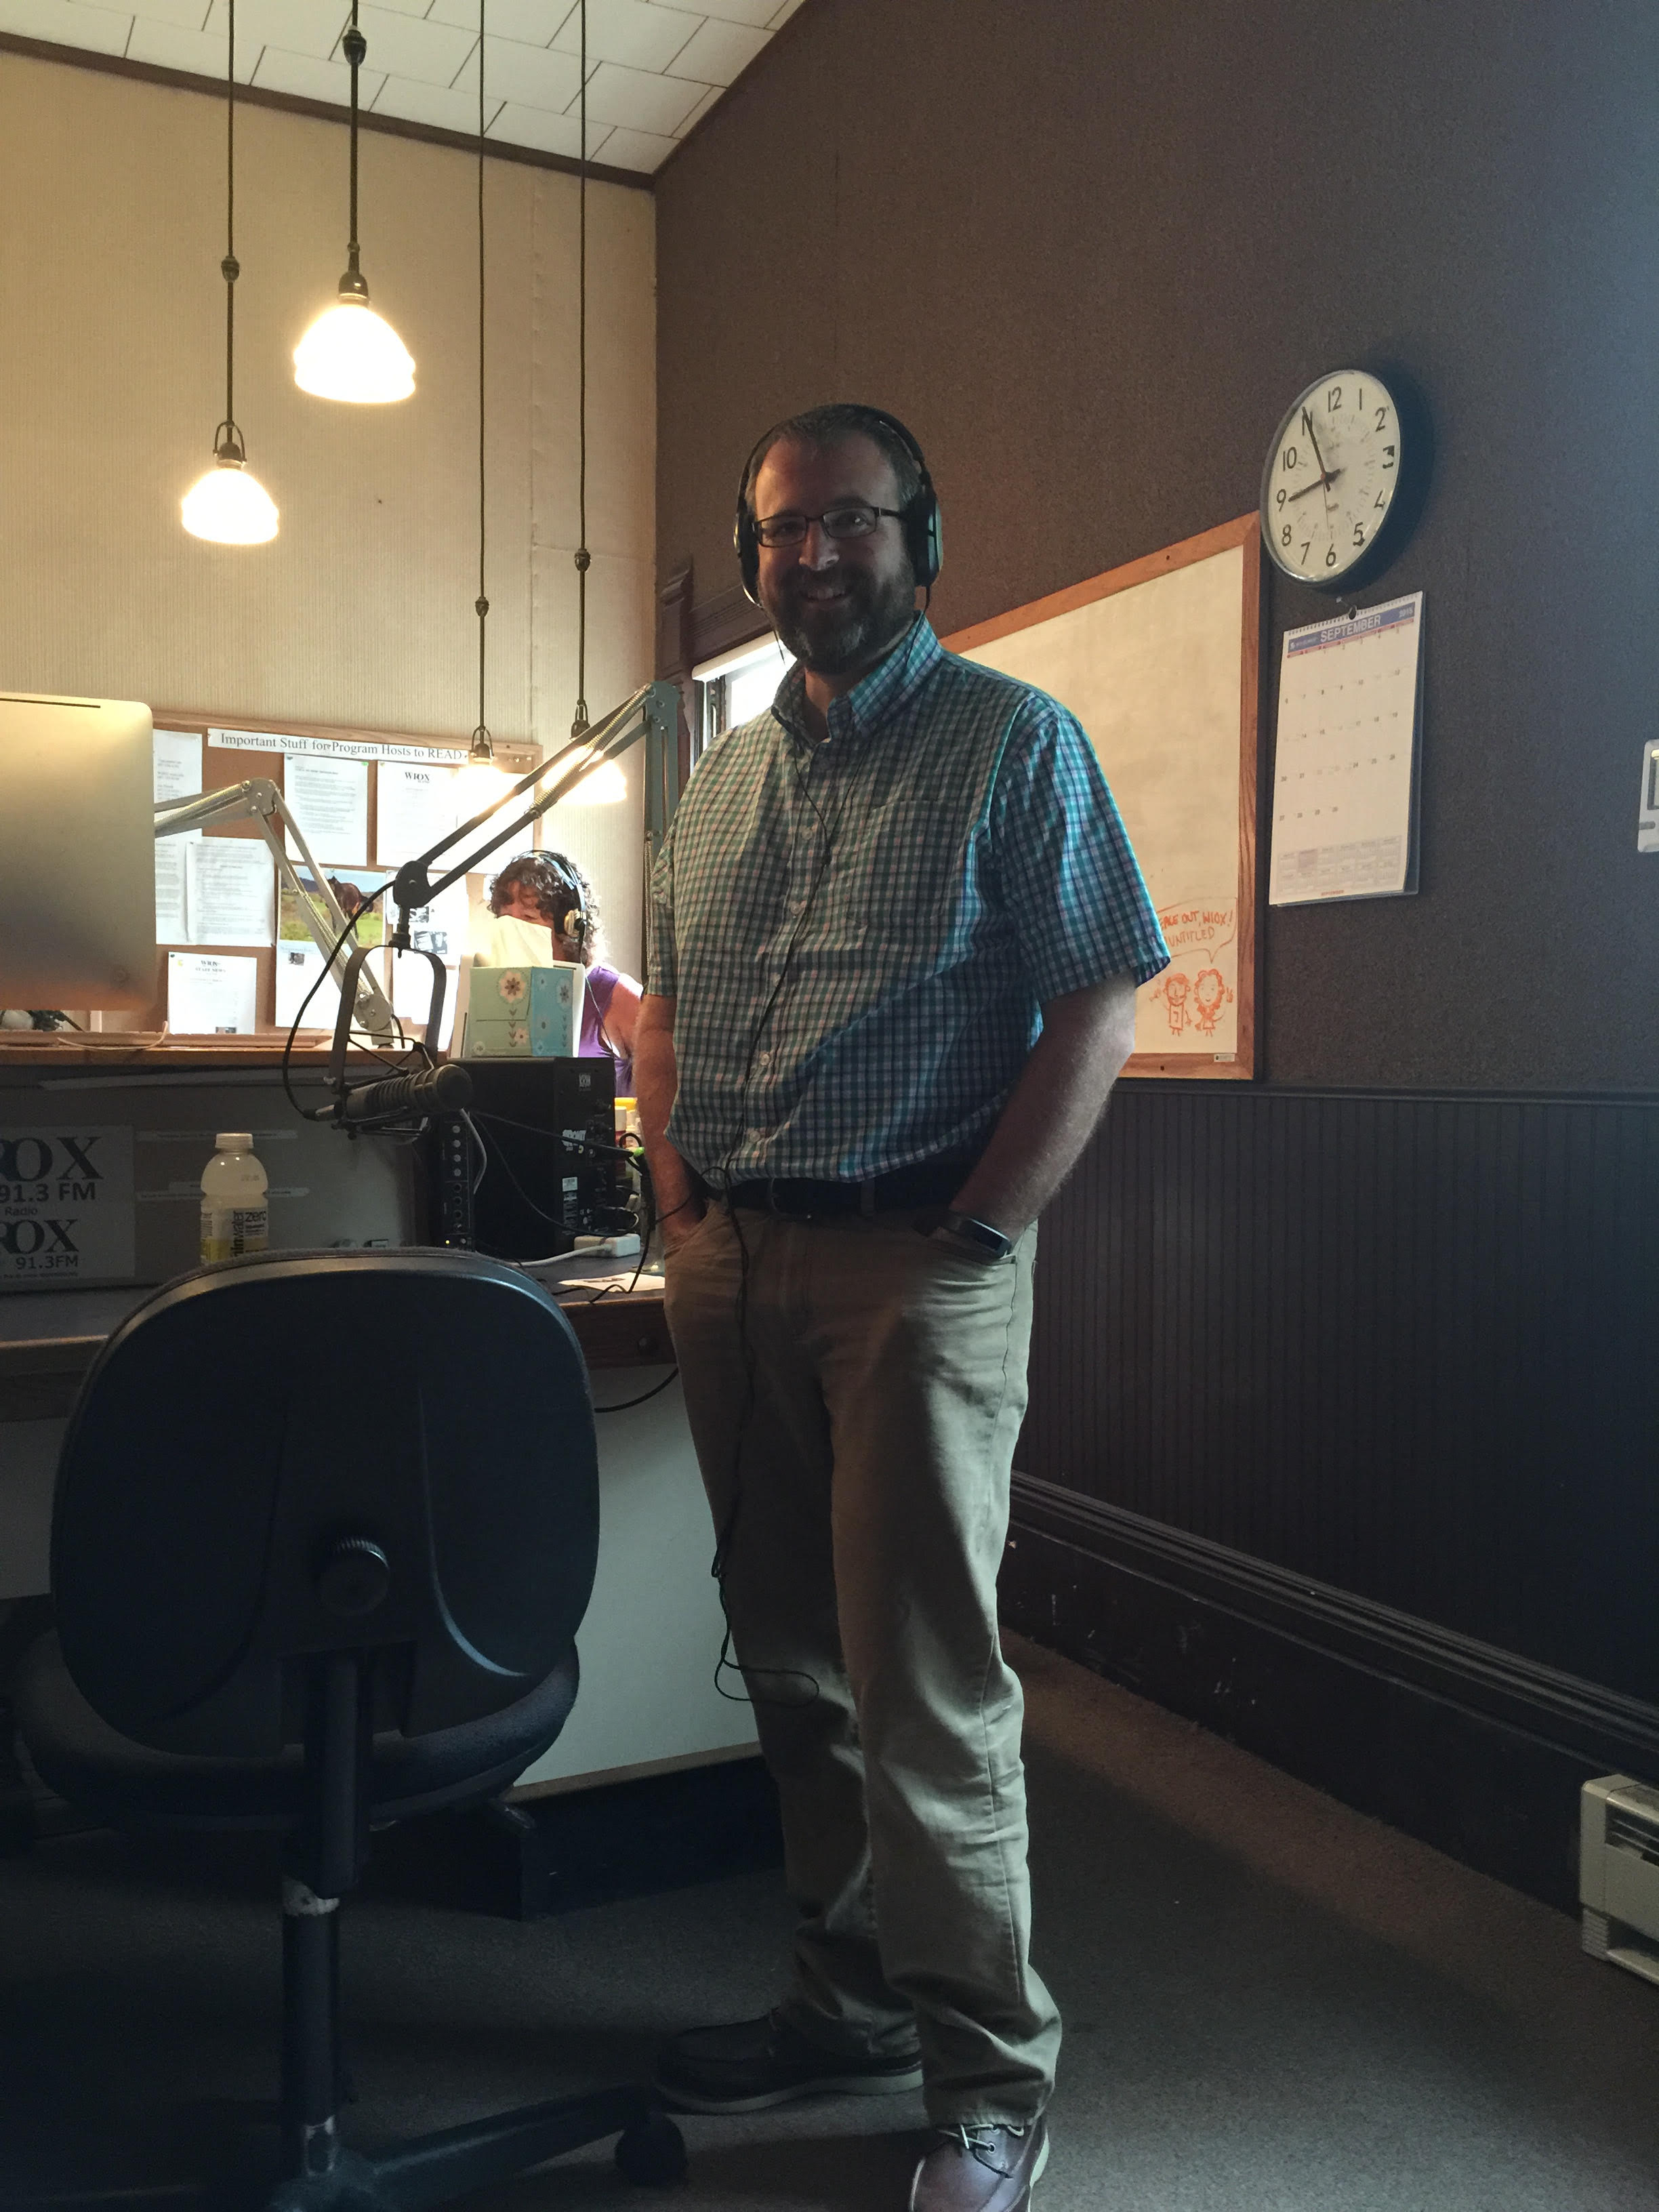 Executive Director Jeff Senterman getting ready for a Catskill Digest broadcast